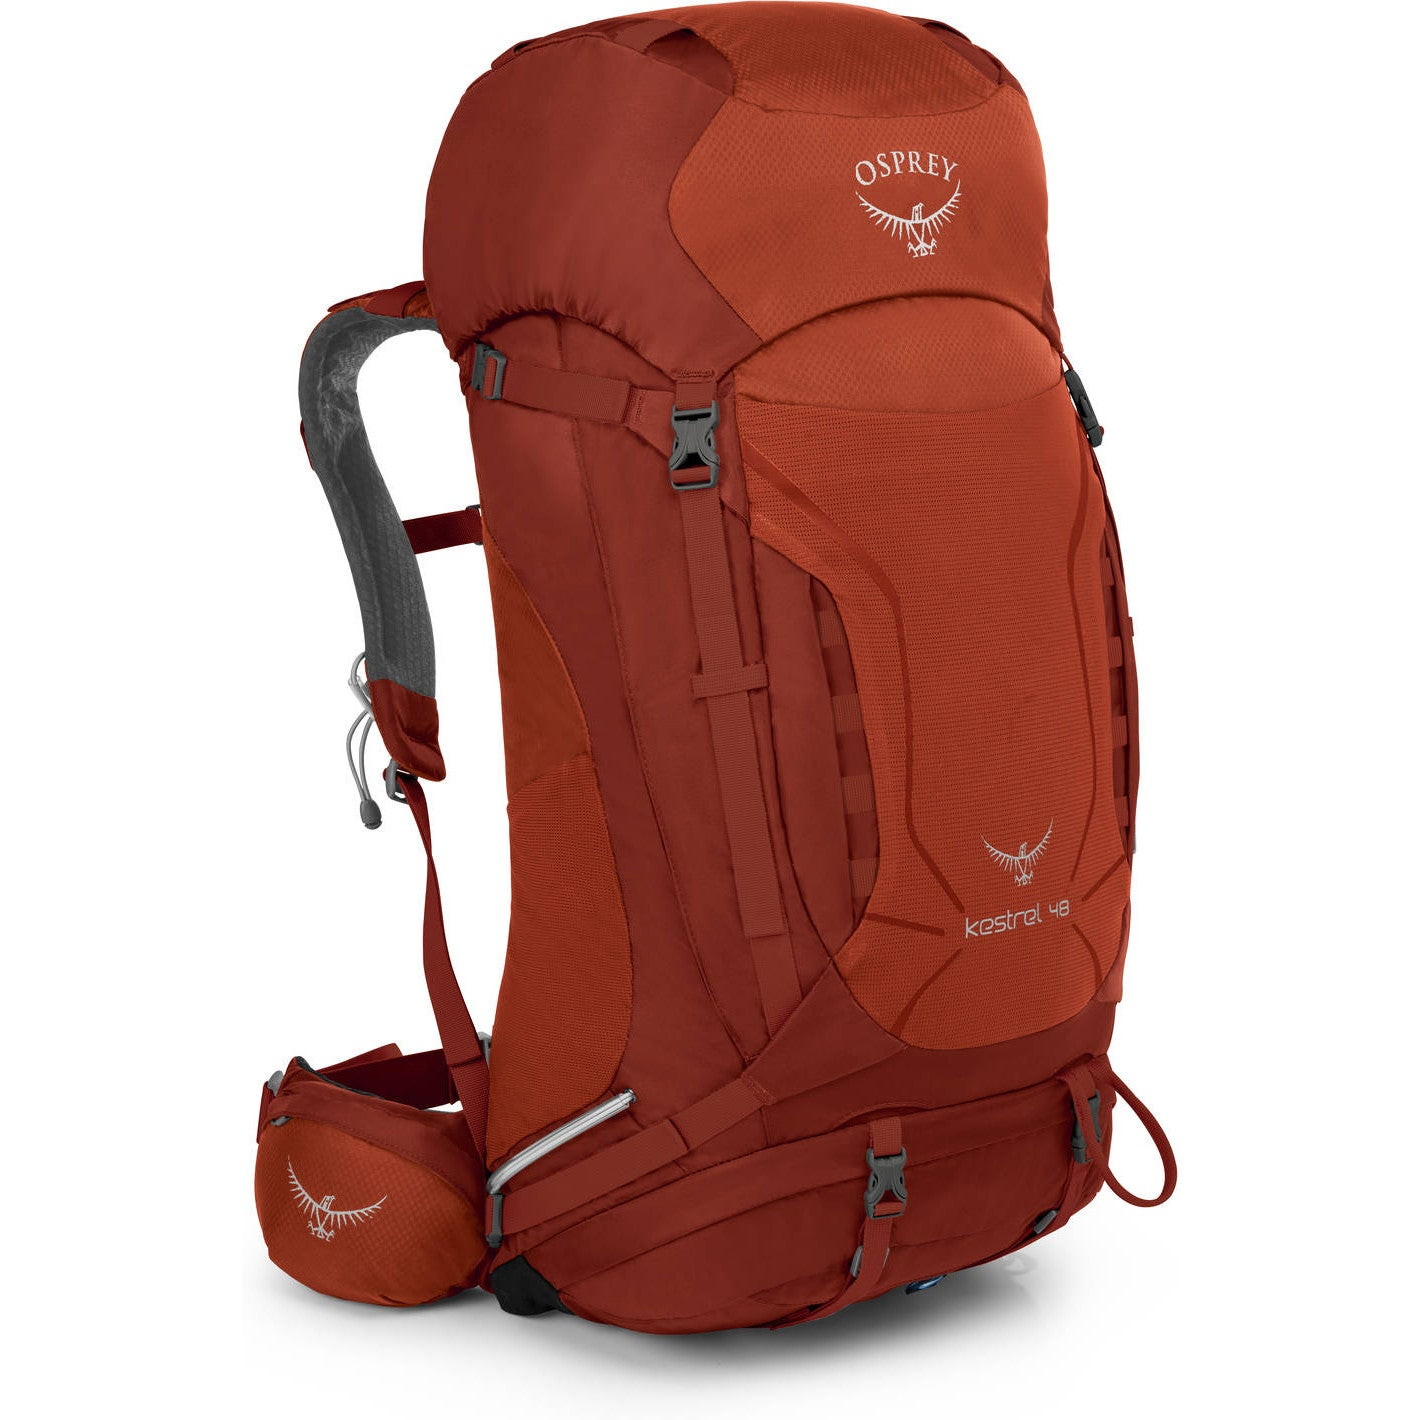 Osprey Kestrel 48 Mens Hiking Backpack